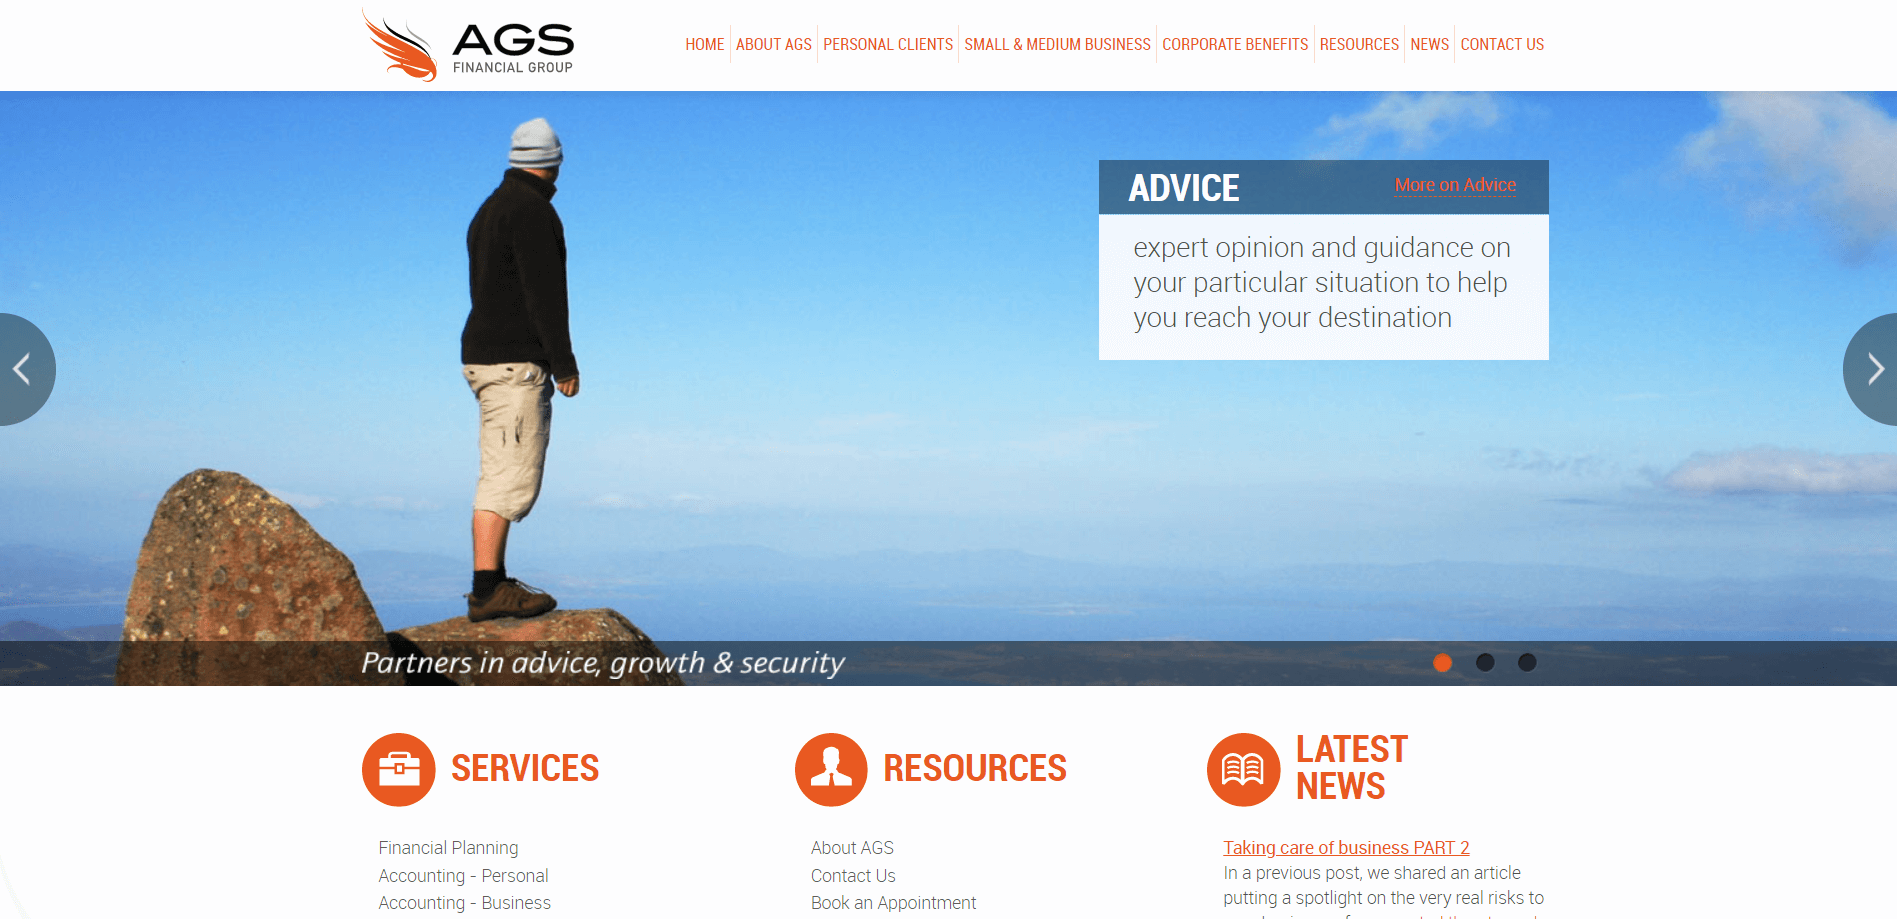 ags financial group